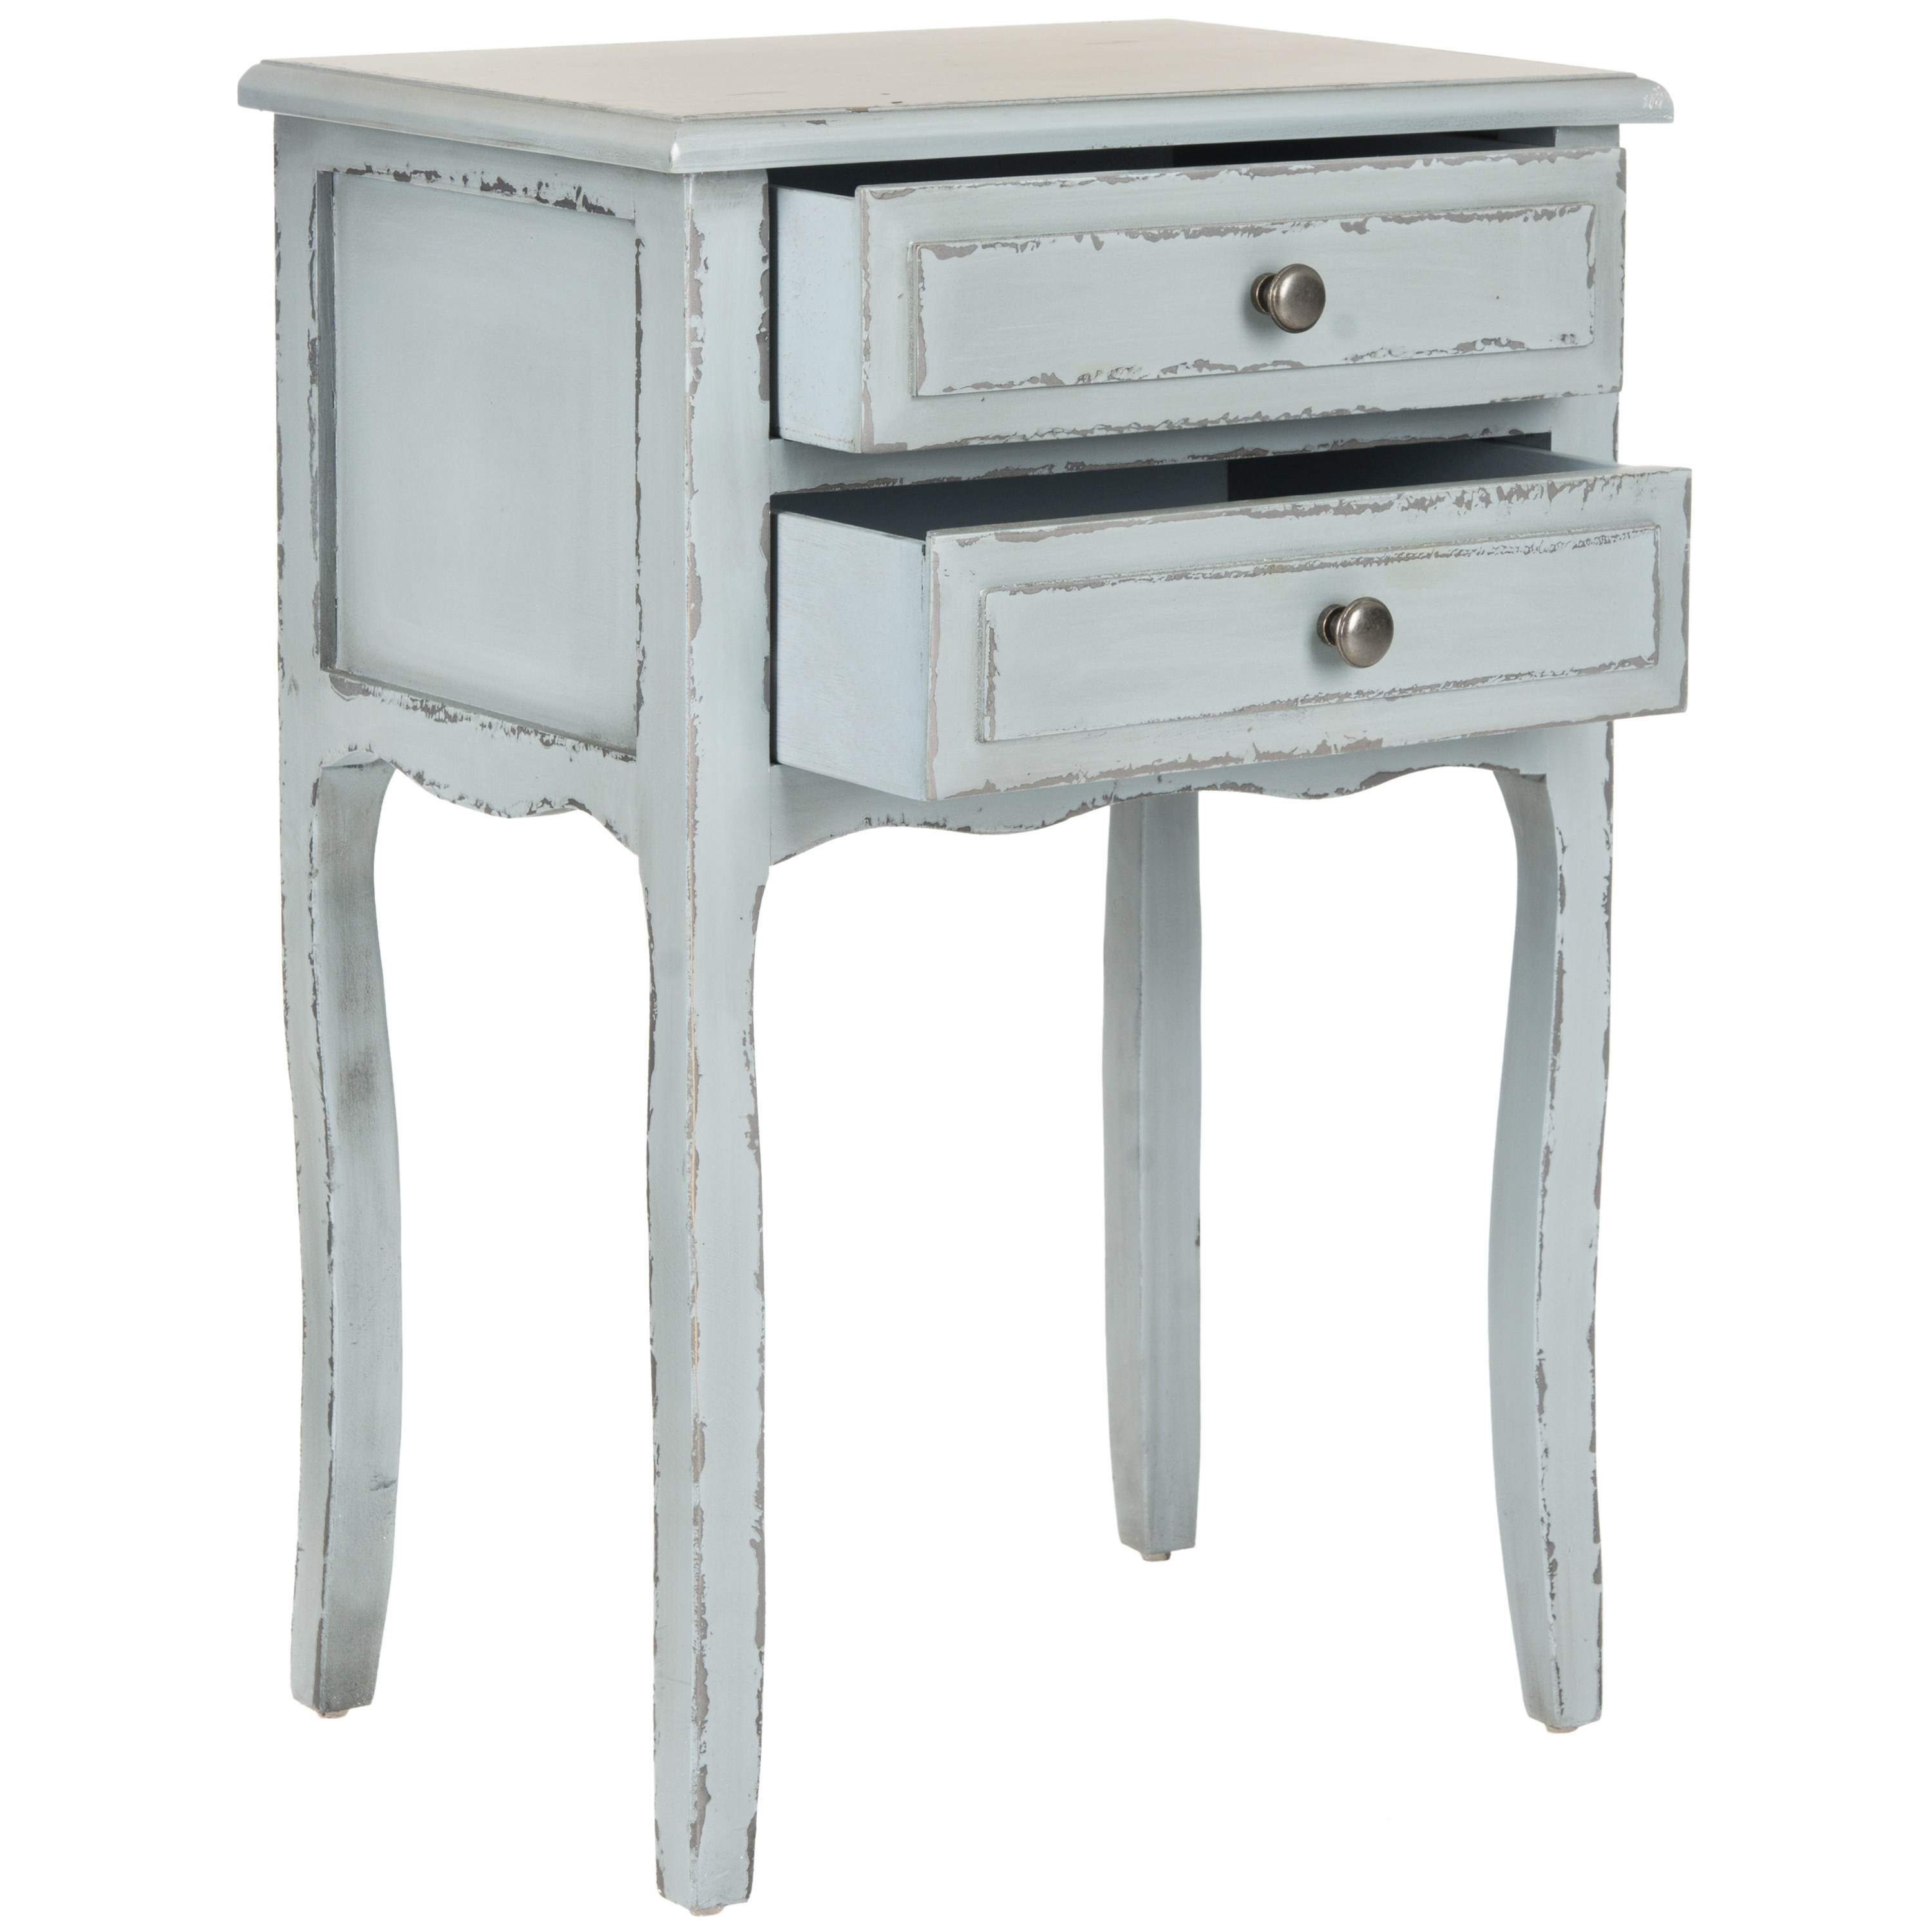 safavieh lori distressed pale blue accent table free shipping today pretty storage boxes ikea counter height kitchen and chair sets farmhouse sliding door console battery powered